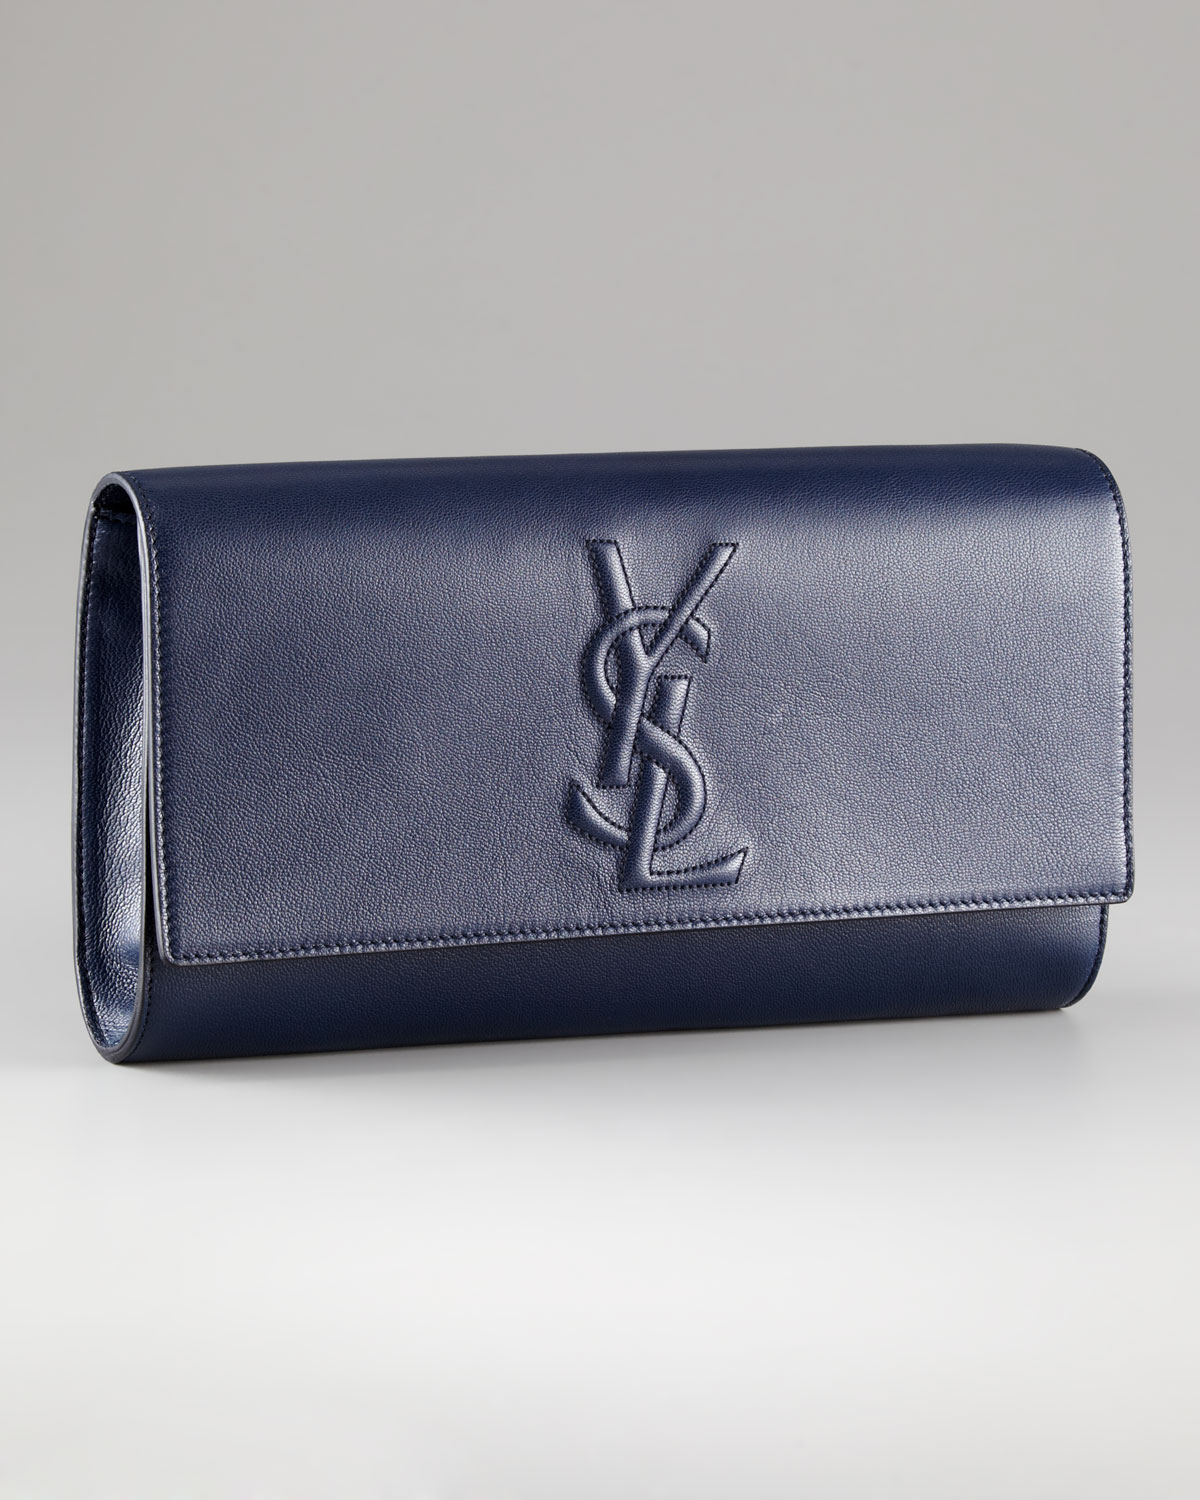 Saint laurent Belle Du Jour Leather Clutch in Blue (navy) | Lyst